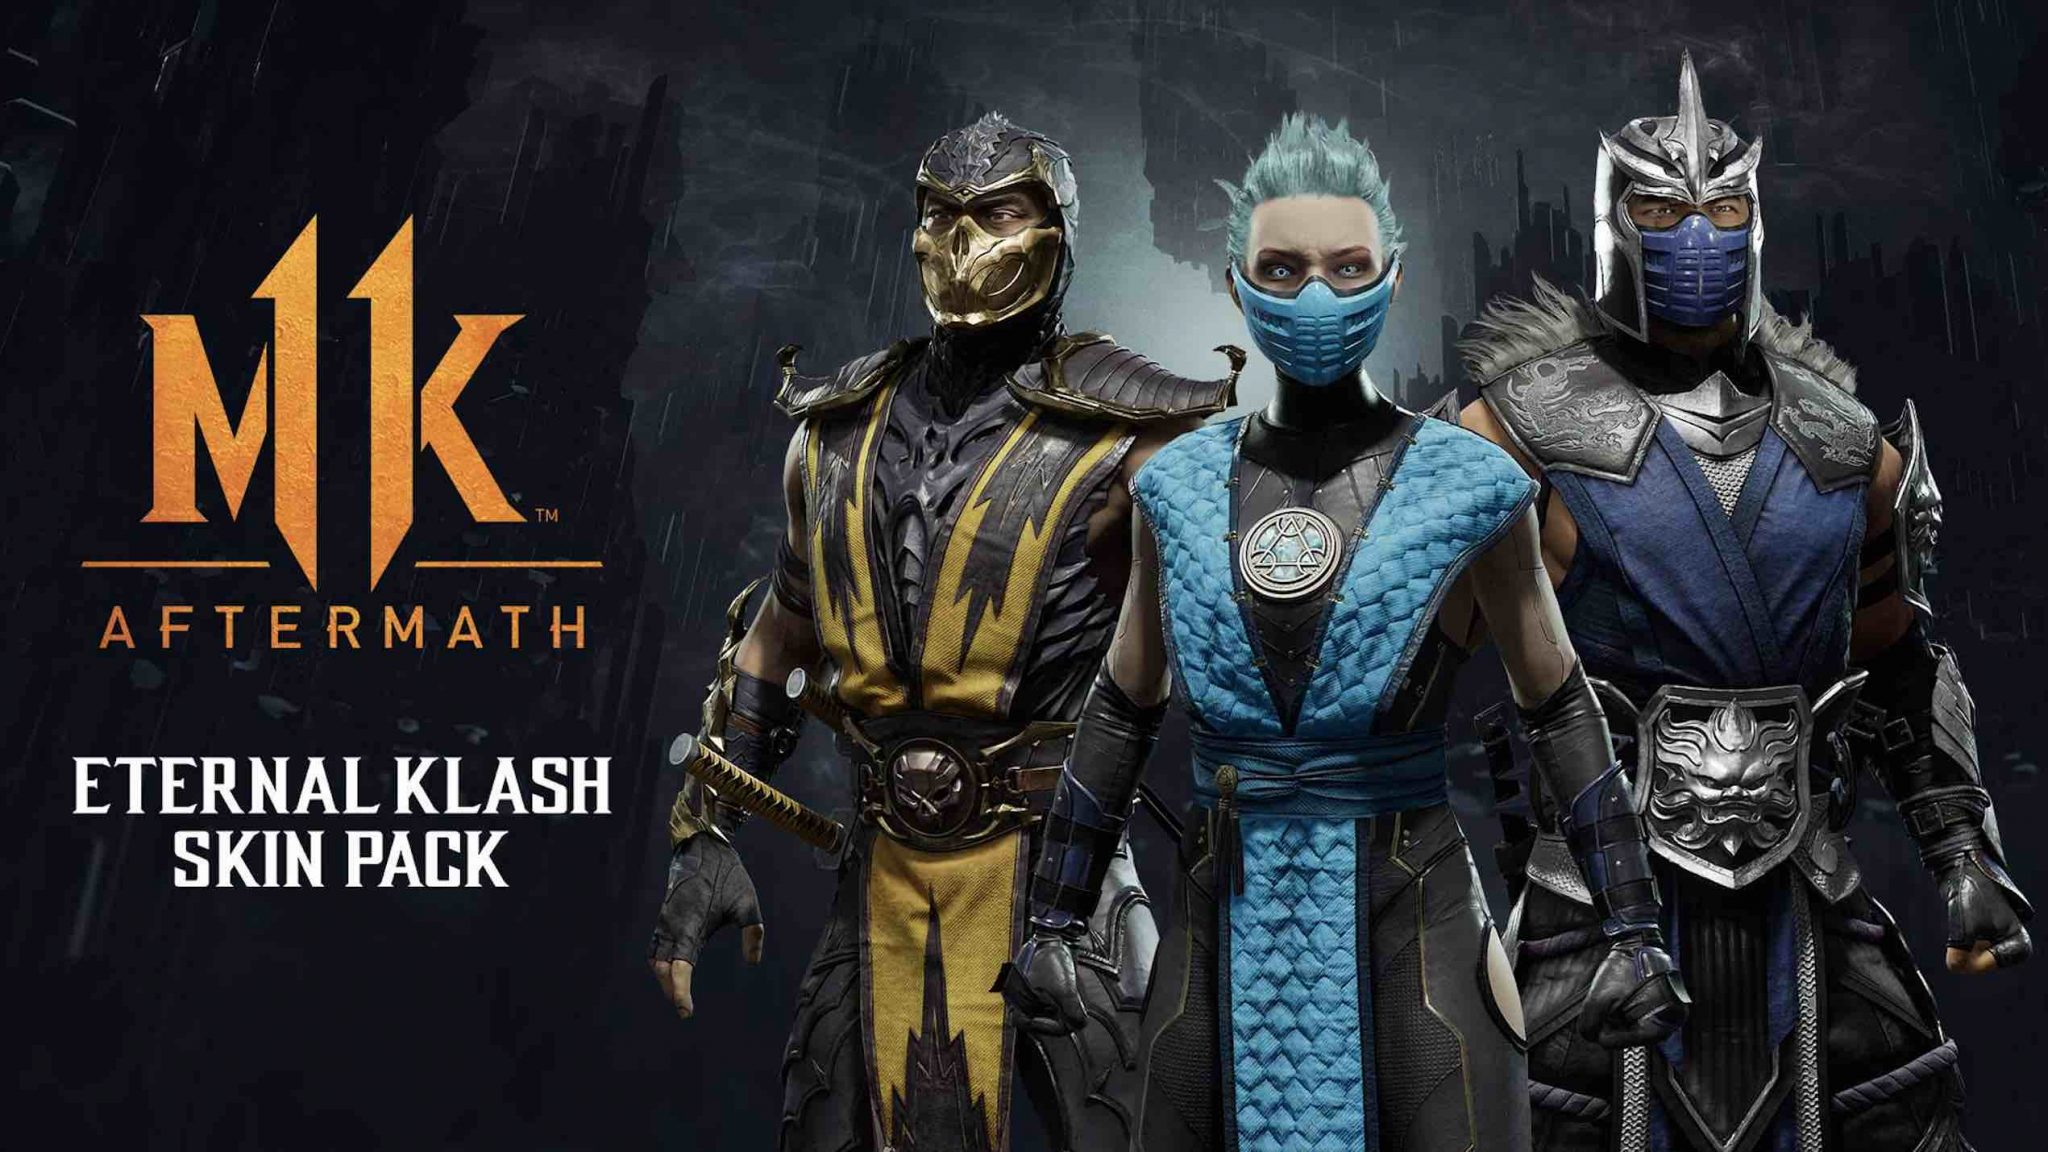 imagen de Mortal Kombat 11 Aftermath  Eternal Klash